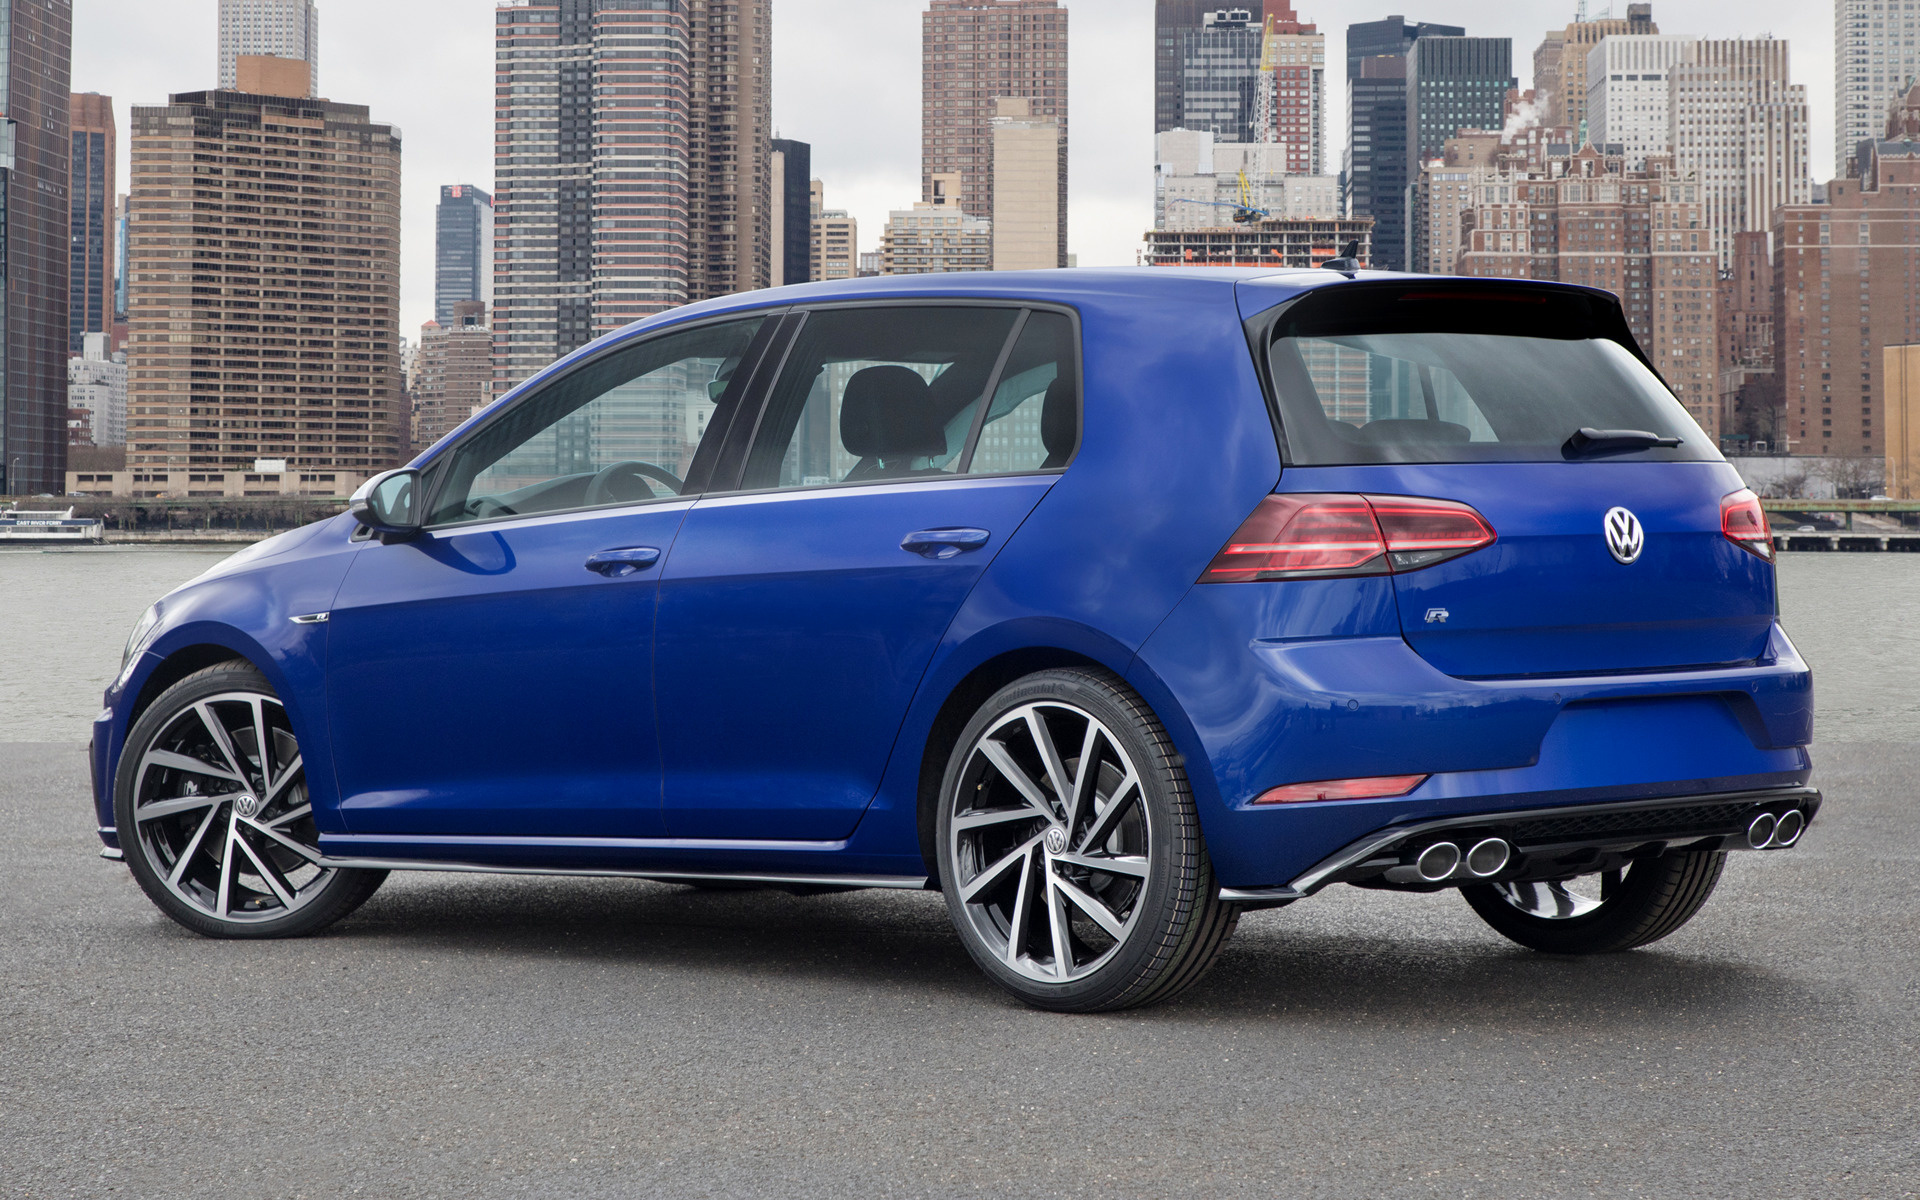 Volkswagen Golf R 5 Door 2018 US Wallpapers And HD Images